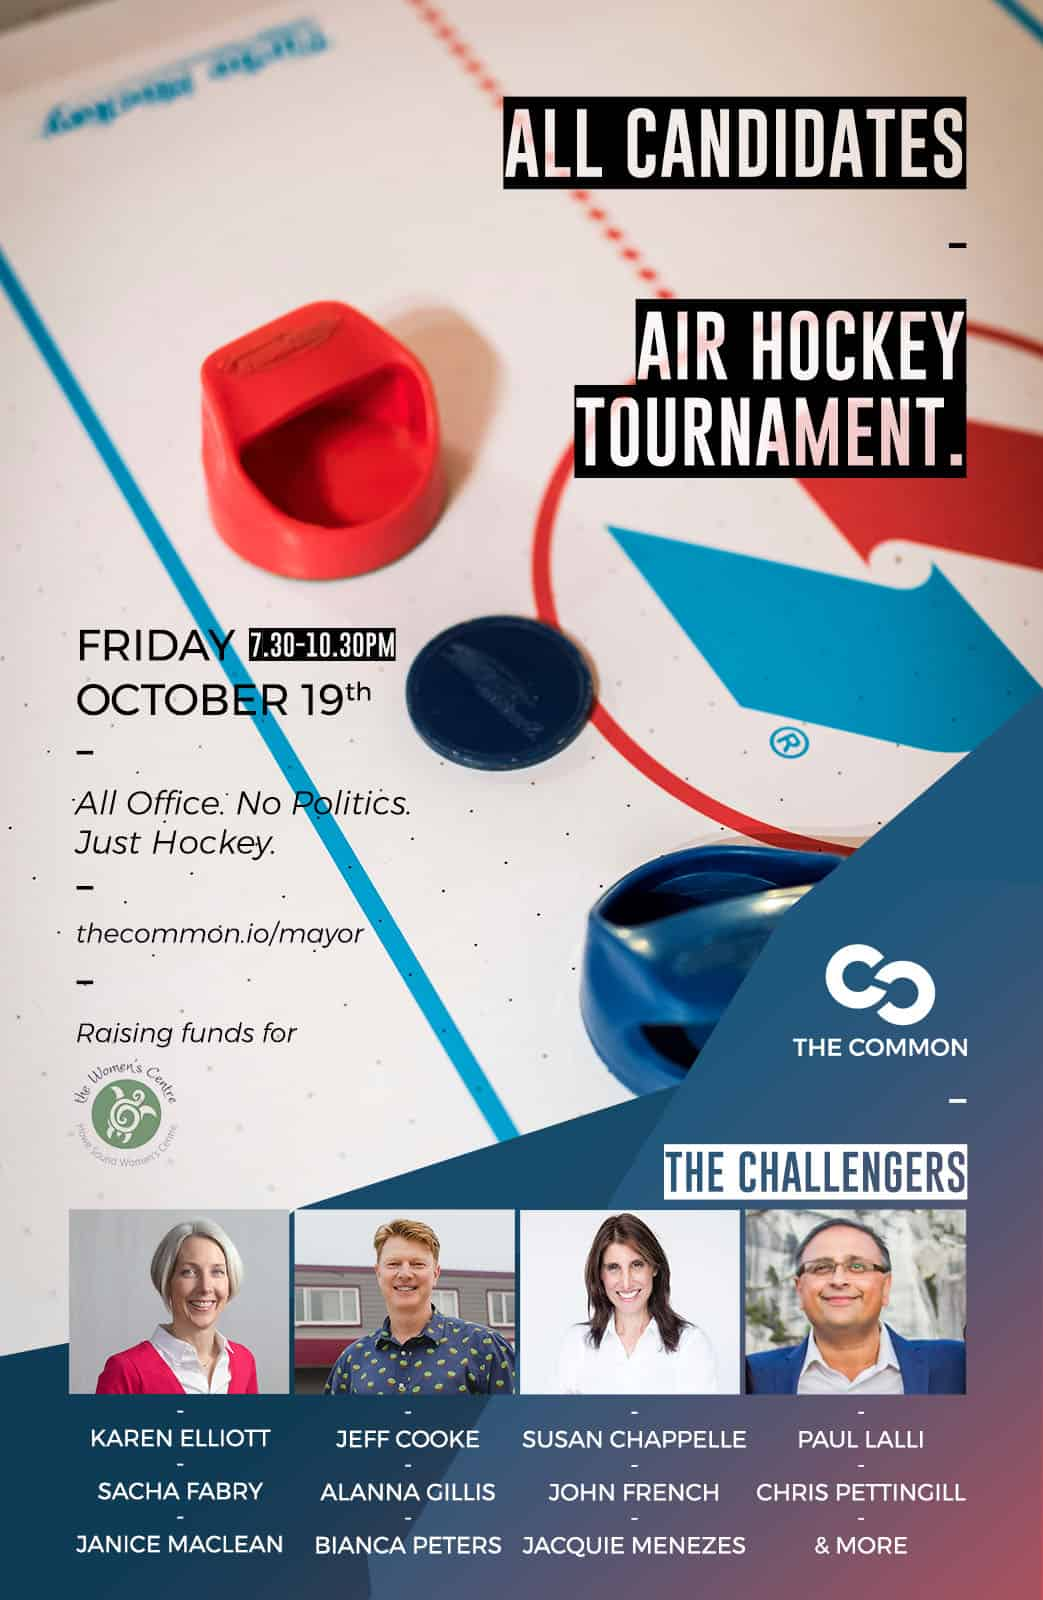 The-Common-All-Candidates-2018-Squamish-Election-Air-Hockey-Tournament